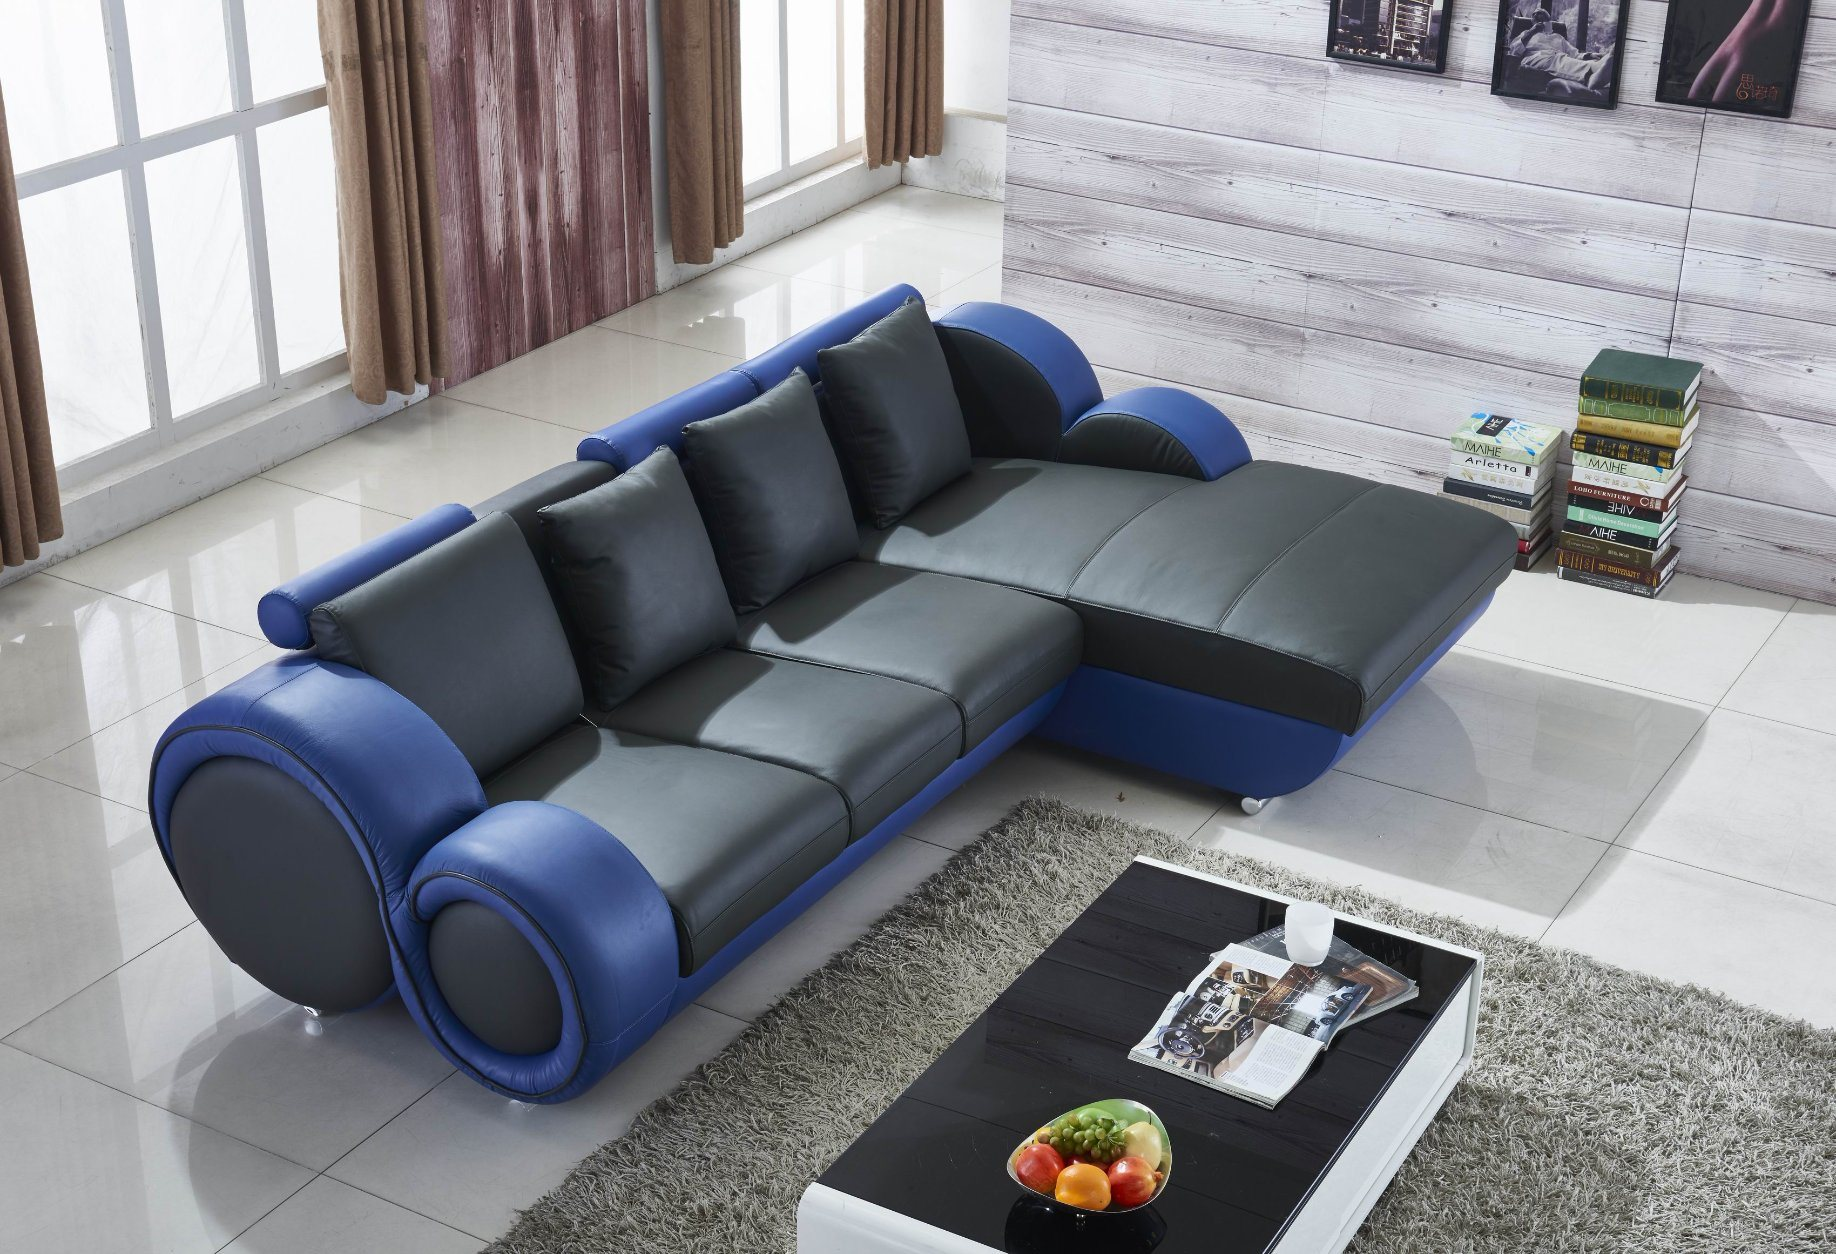 China Corner Automatic Nanual Recliner Modern Latest Design U Shaped Recliner Leather Sectional Corner Sofa Living Room Sofa China Sectional Recliner Leather Sofa European Style Sectional Sofa